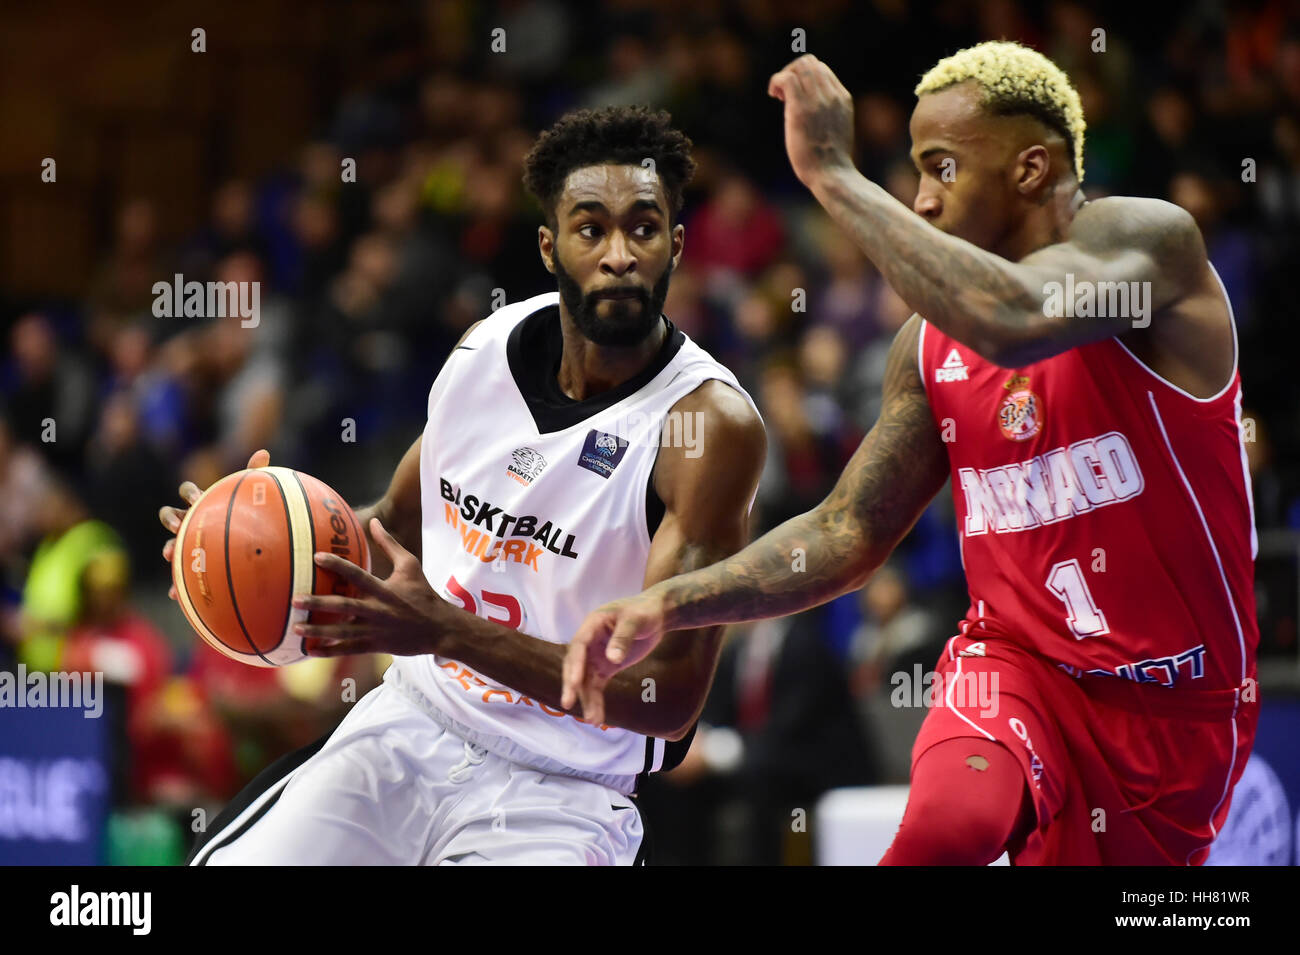 Nymburk, Czech Republic. 17th Jan, 2017. From left Howard Sant-Roos of Nymburk and Dee Bost of Monaco in action - Stock Image